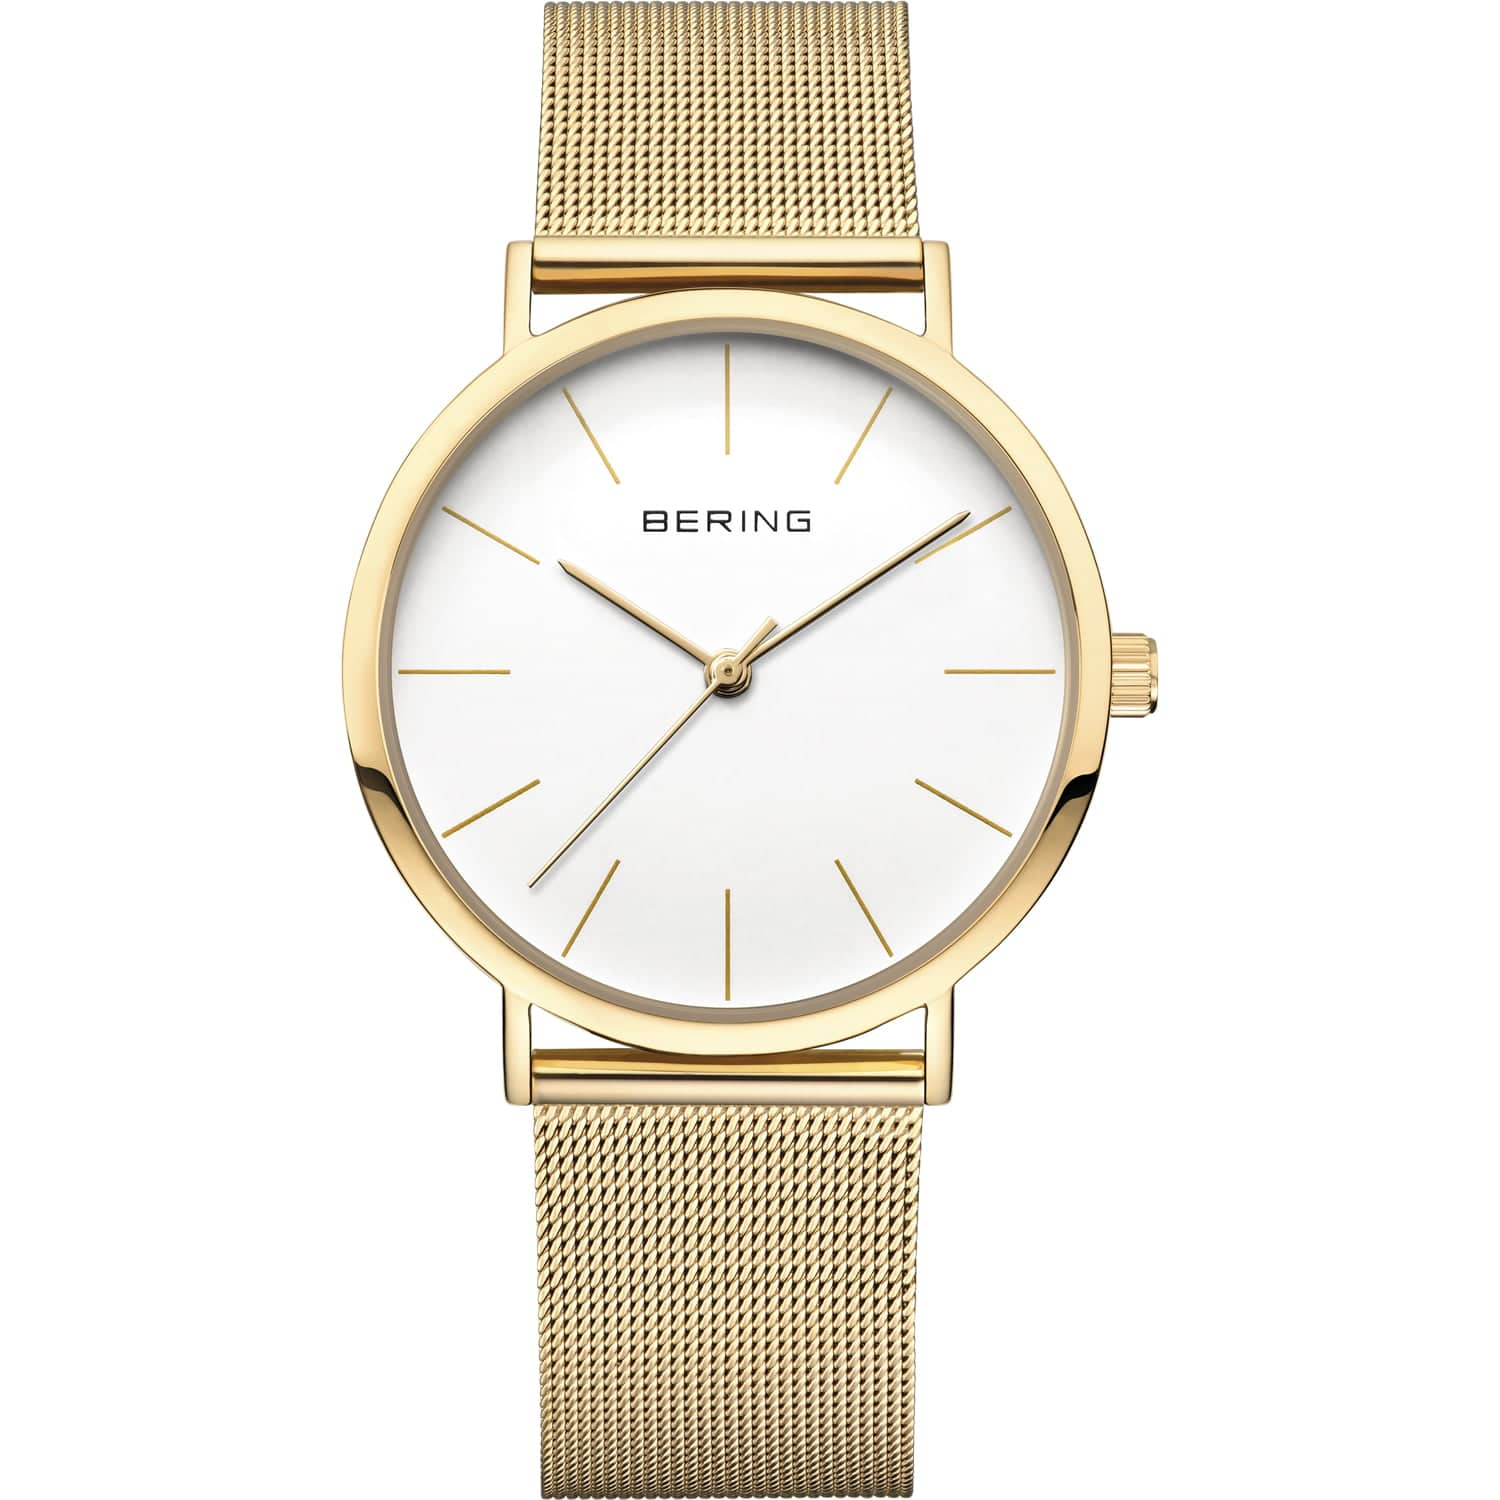 Bering Classic Polished Gold Watch 13436-334